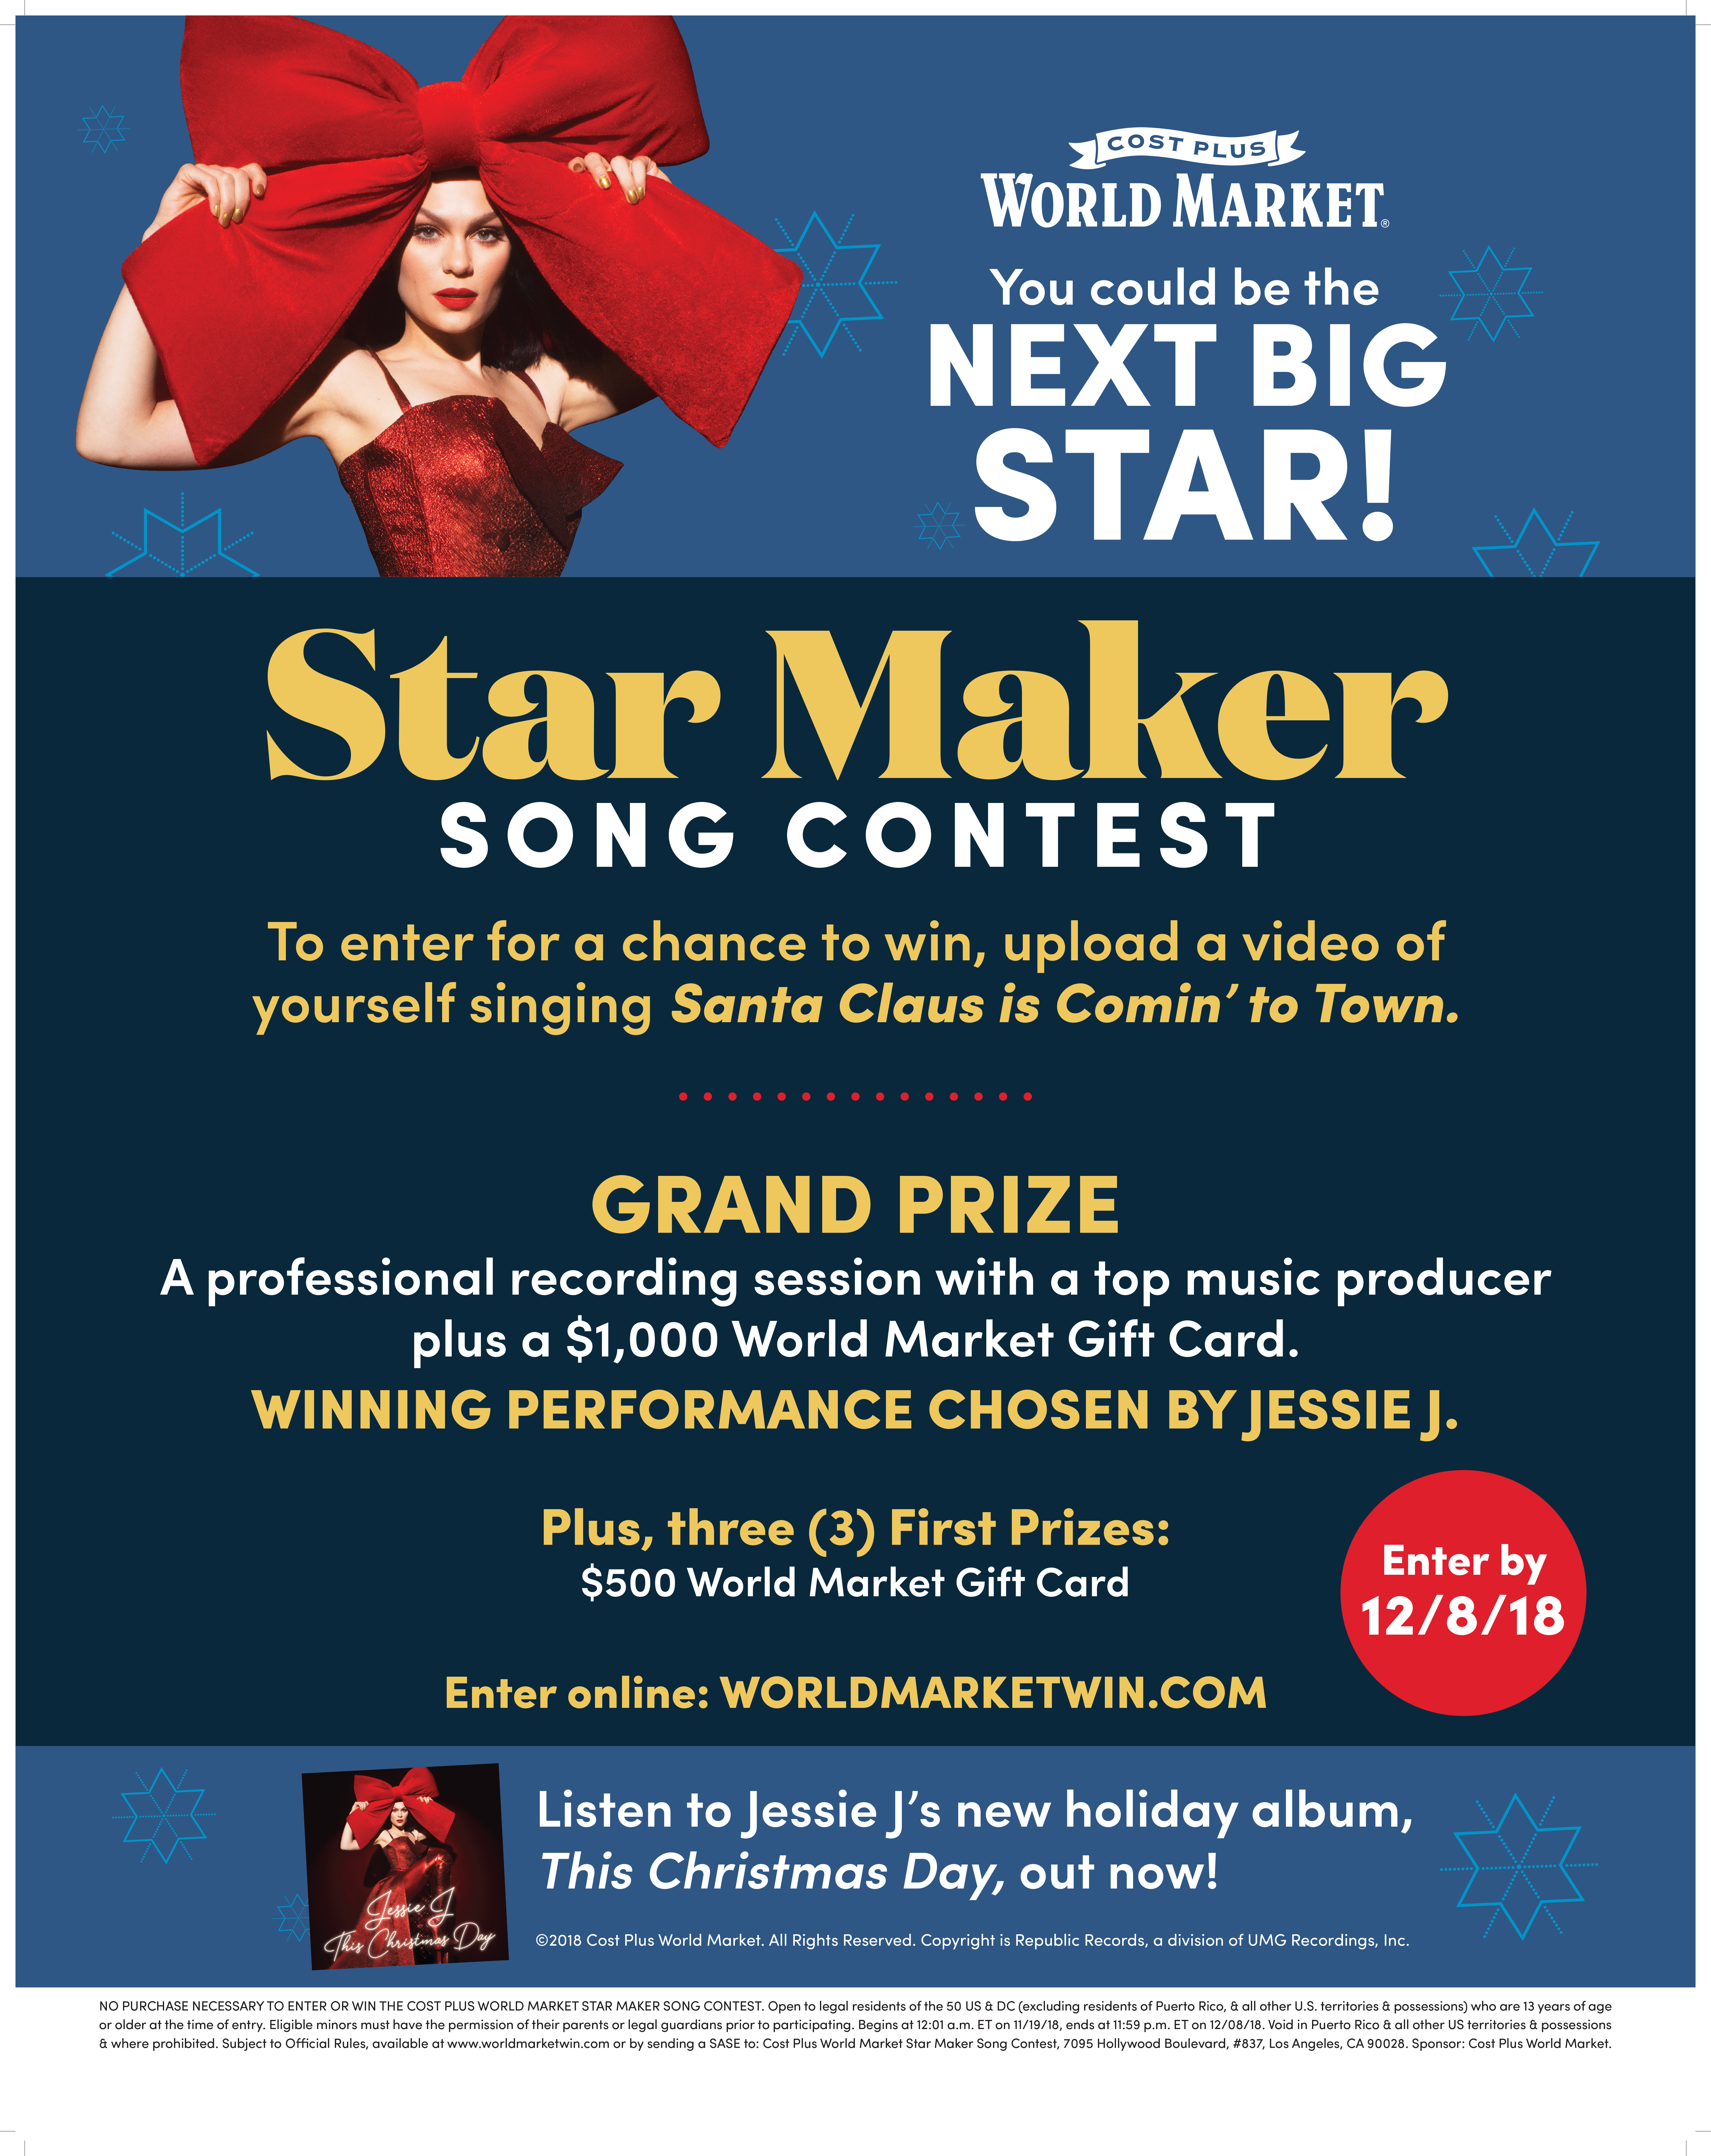 Cost Plus World Market Launches Its Star Maker Song Contest With ...